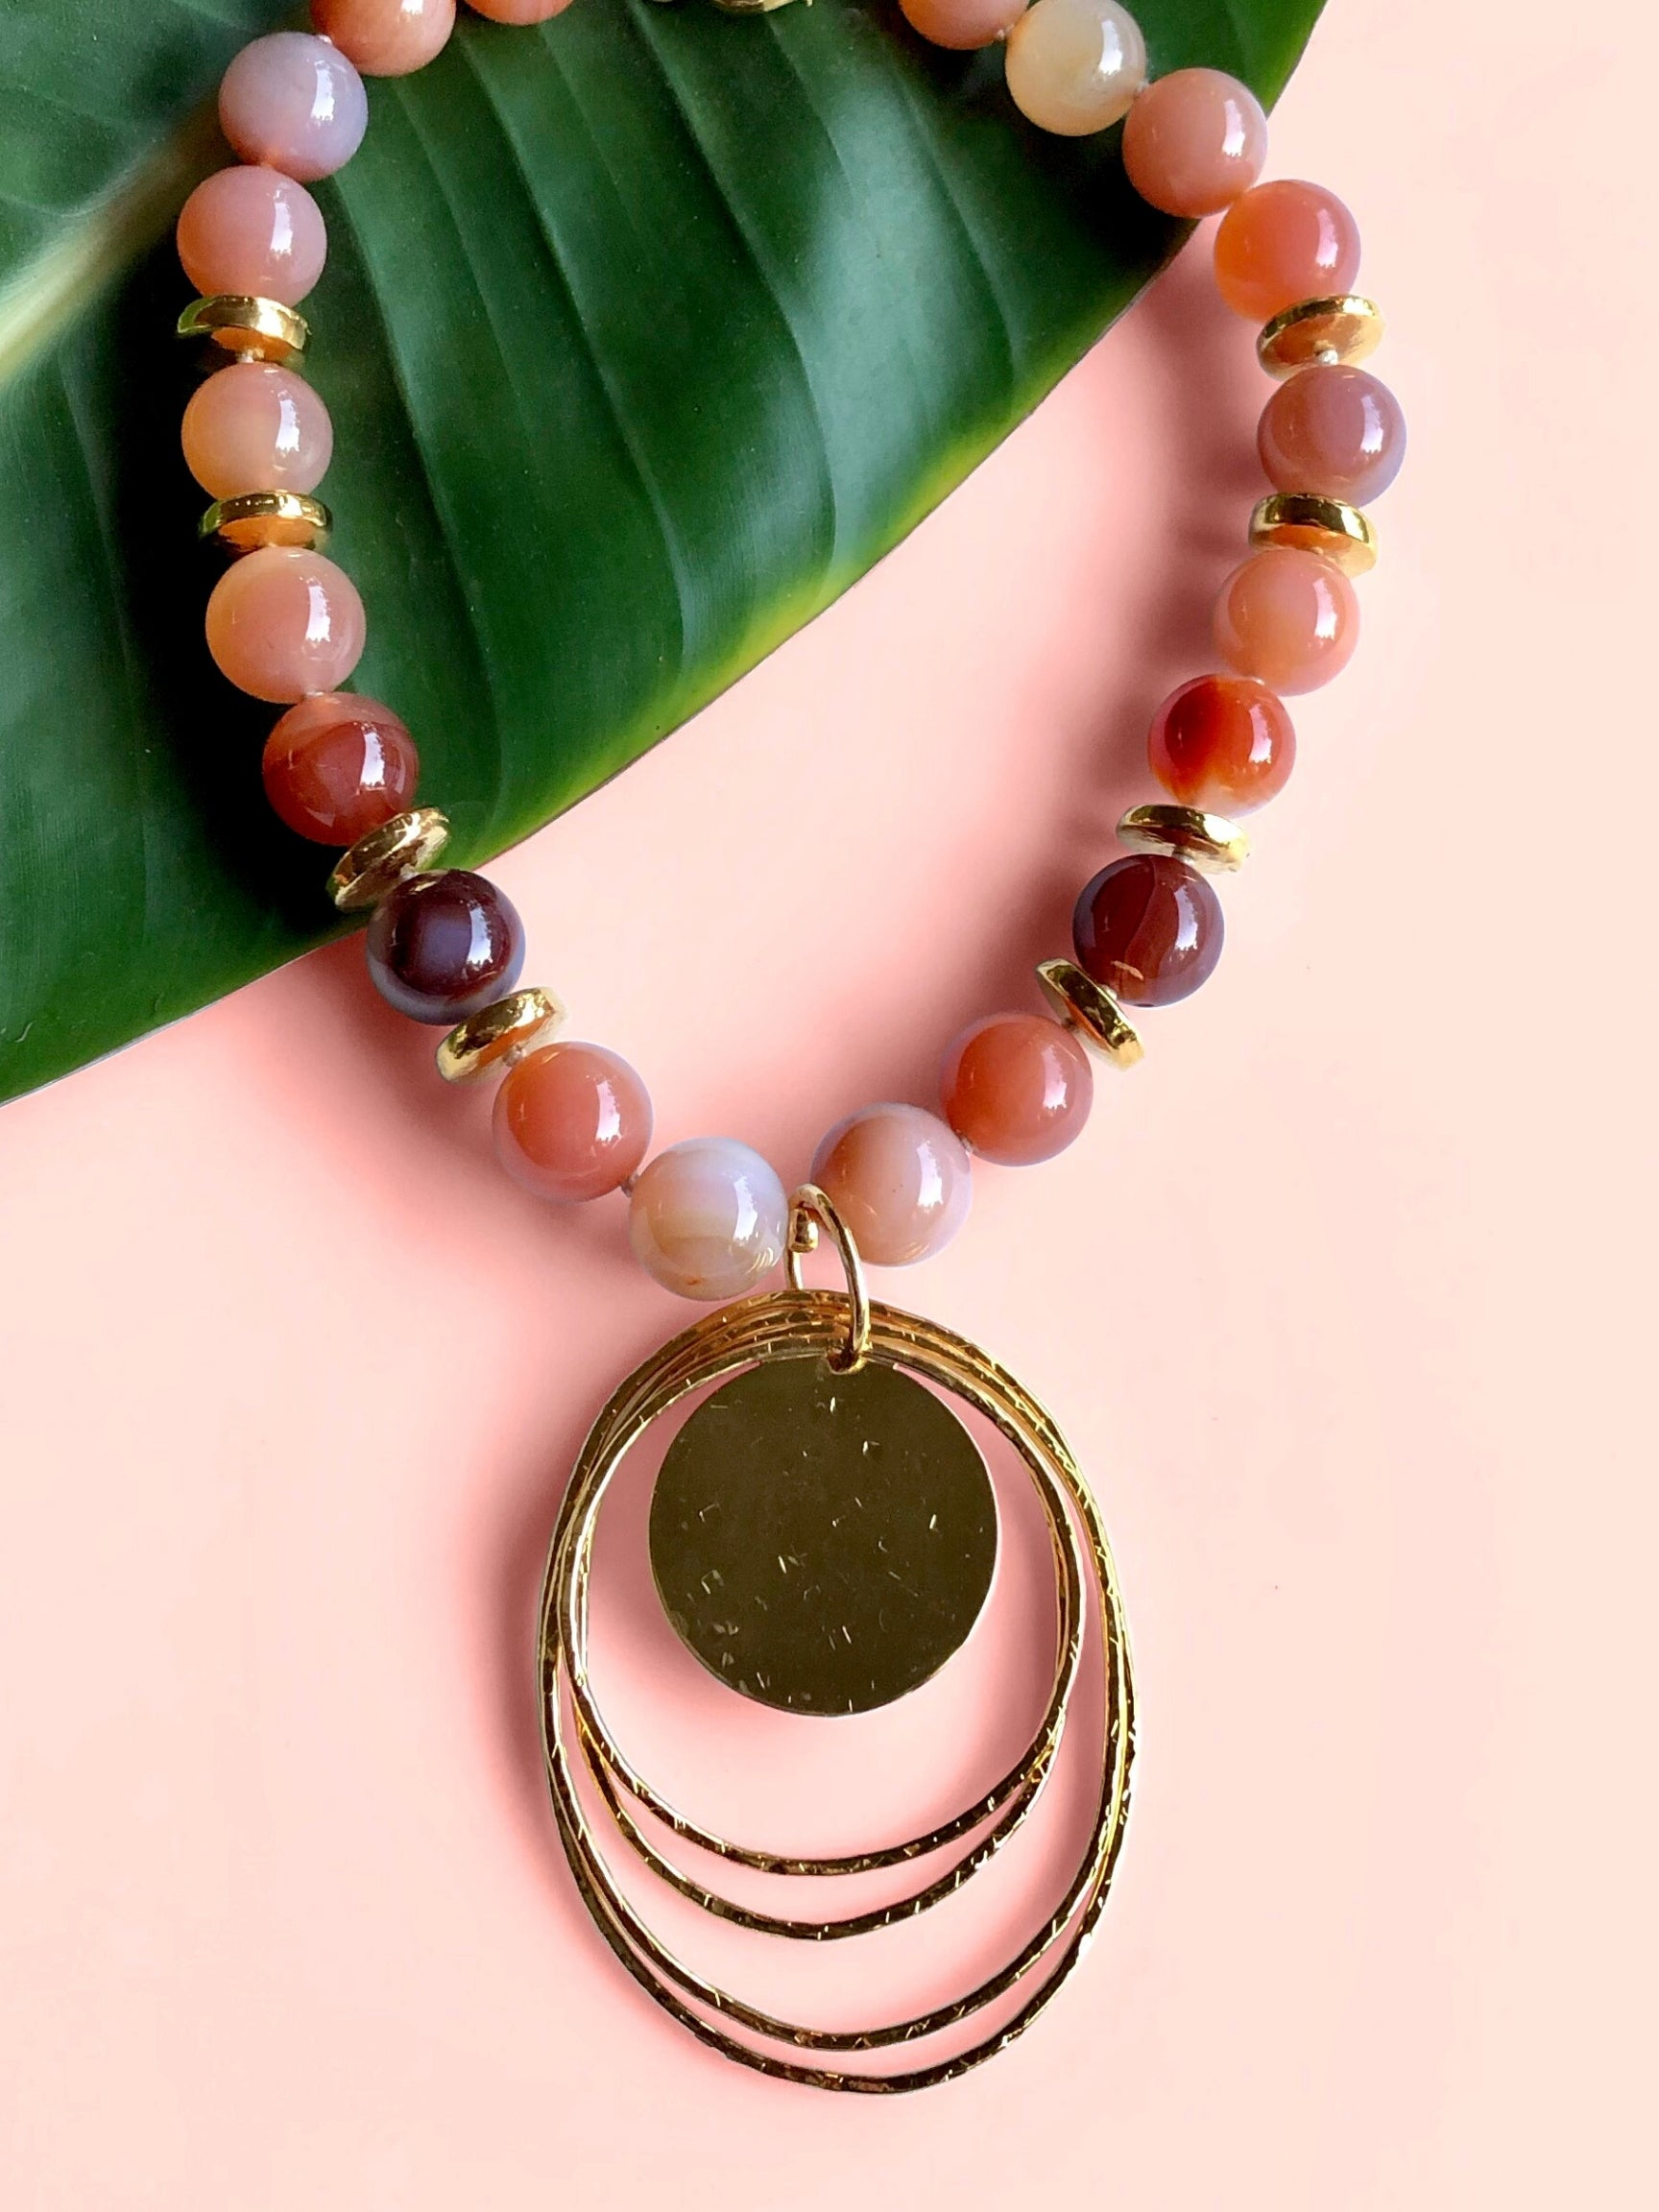 Peacock Dawn Pendant Peach Agate Necklace-Necklaces-JAREDJAMIN Jewelry Online-JARED JAMIN